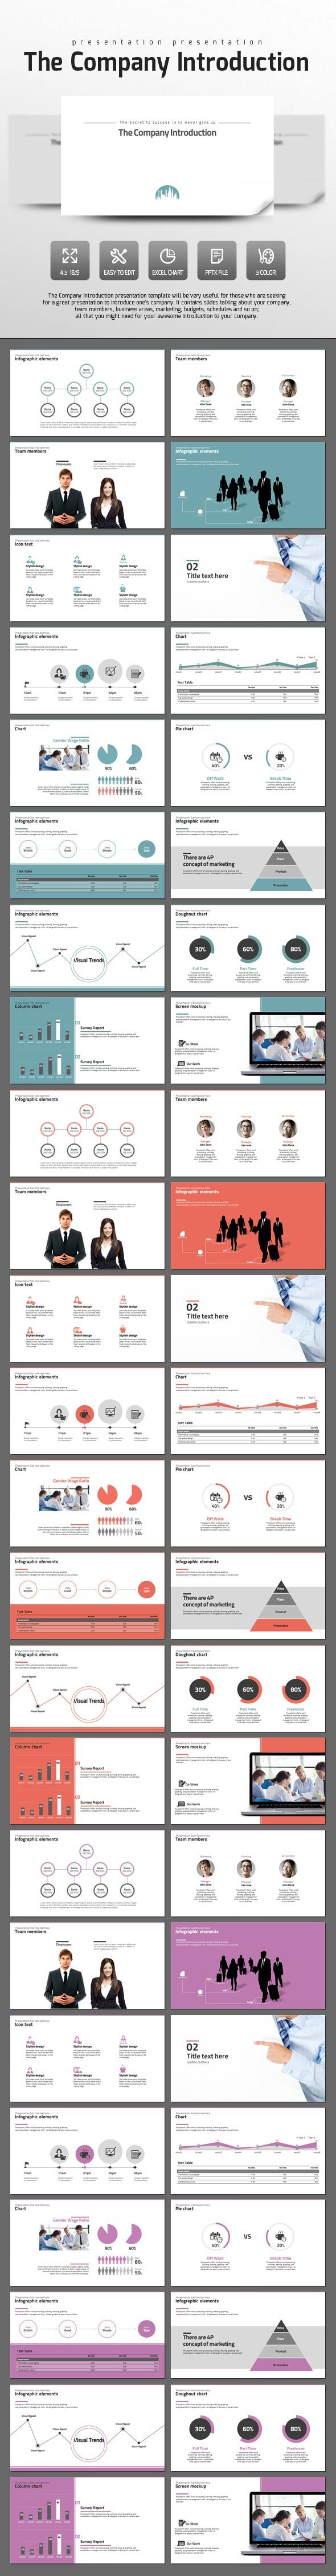 The Company Introduction - PowerPoint Templates Presentation Templates